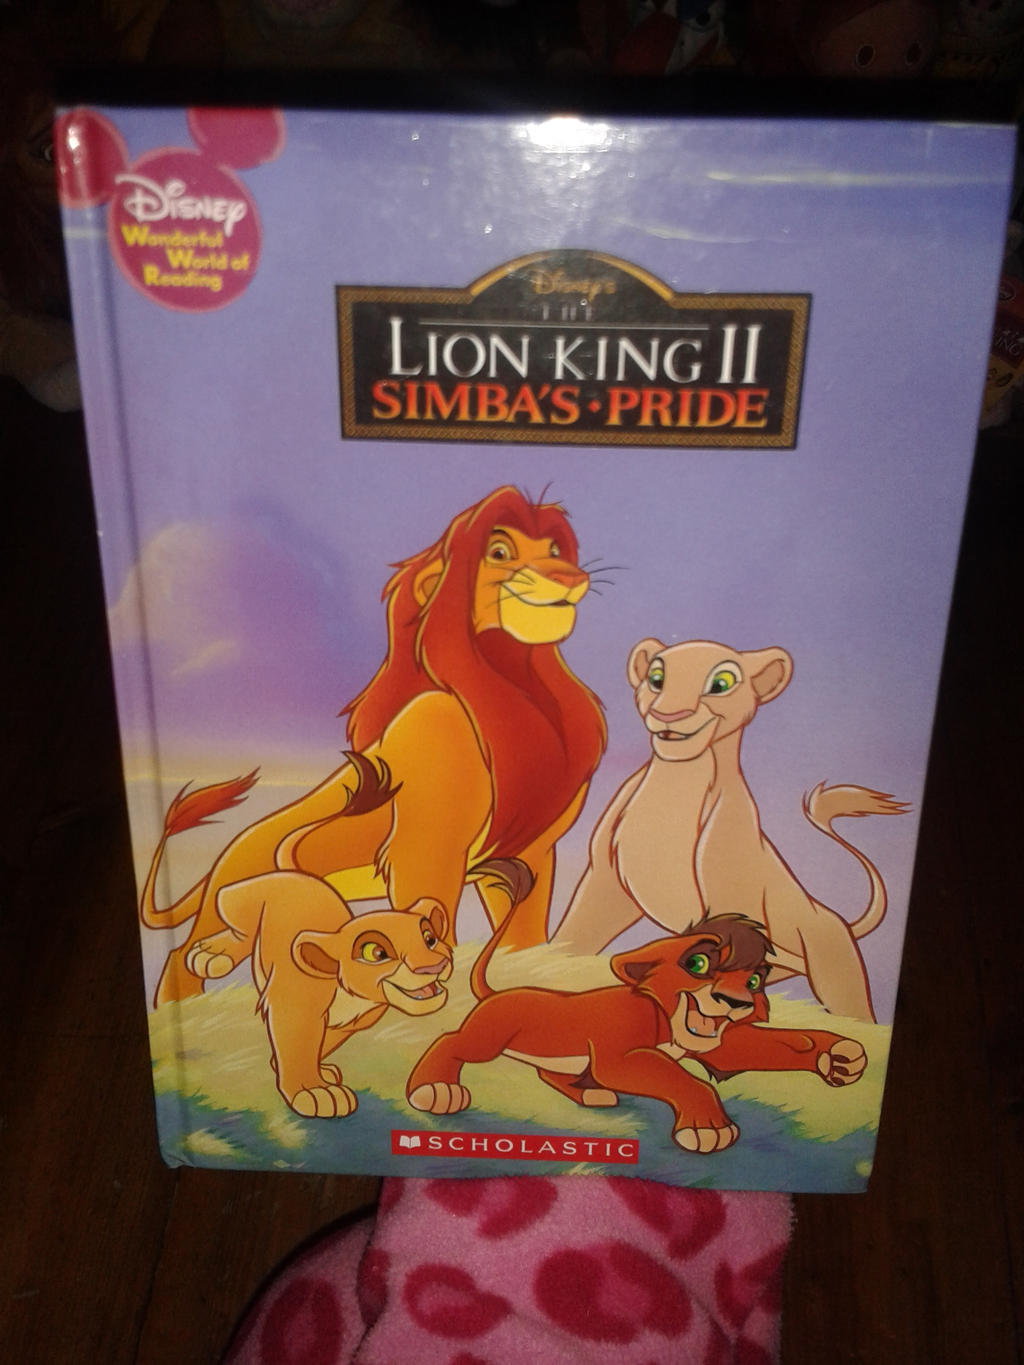 Grolier Lion King 2 Simbas Pride book by Daniellee14 on DeviantArt